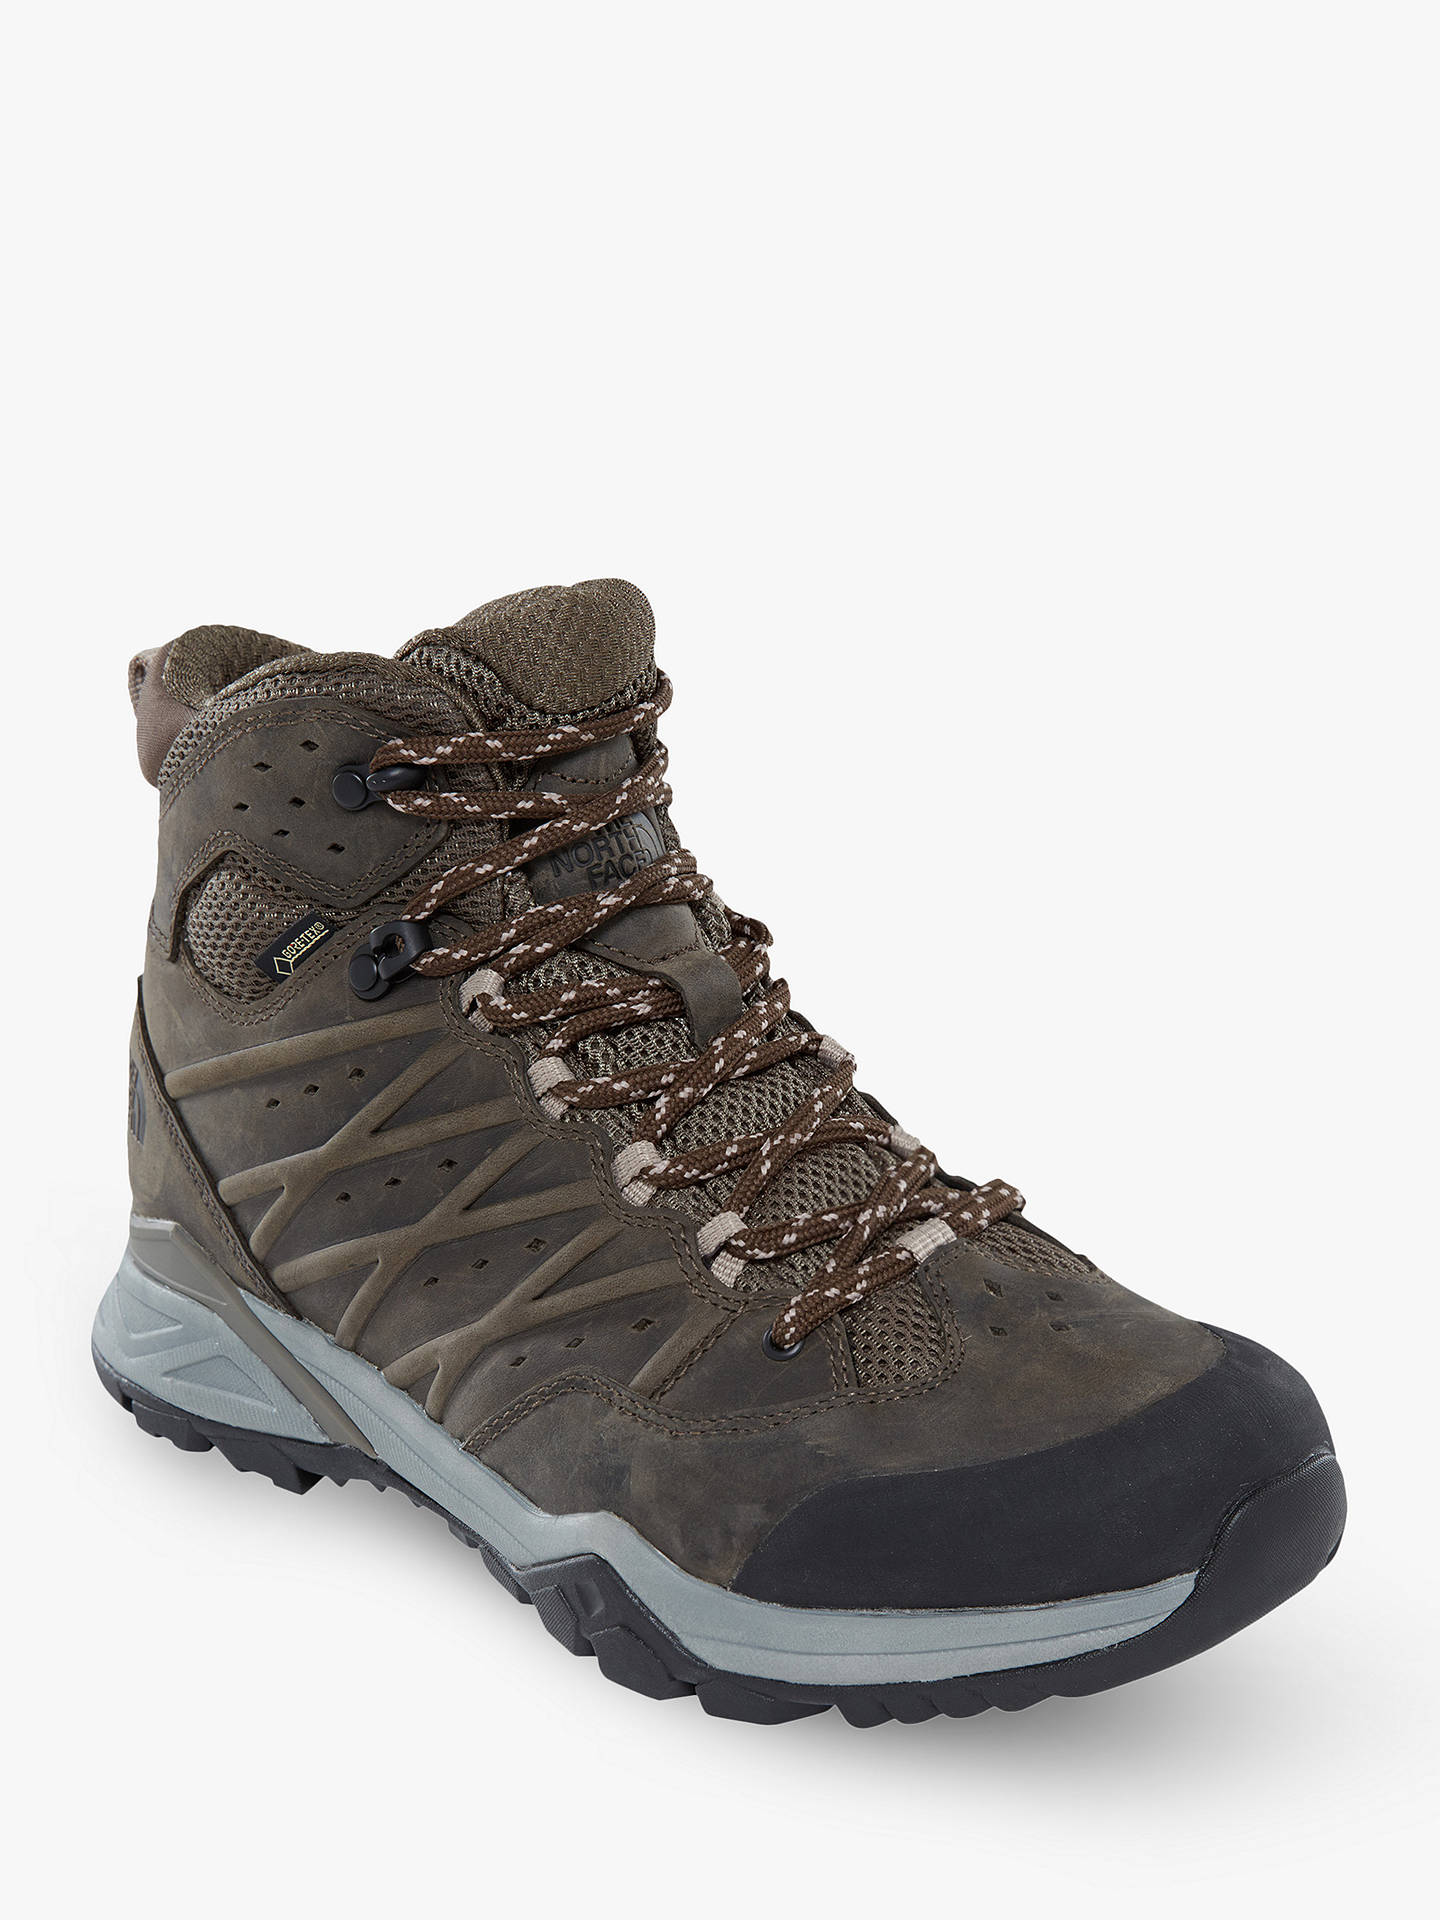 BuyThe North Face Hedgehog Hike 2 Mid GORE-TEX Men's Hiking Boots, Green, 8 Online at johnlewis.com